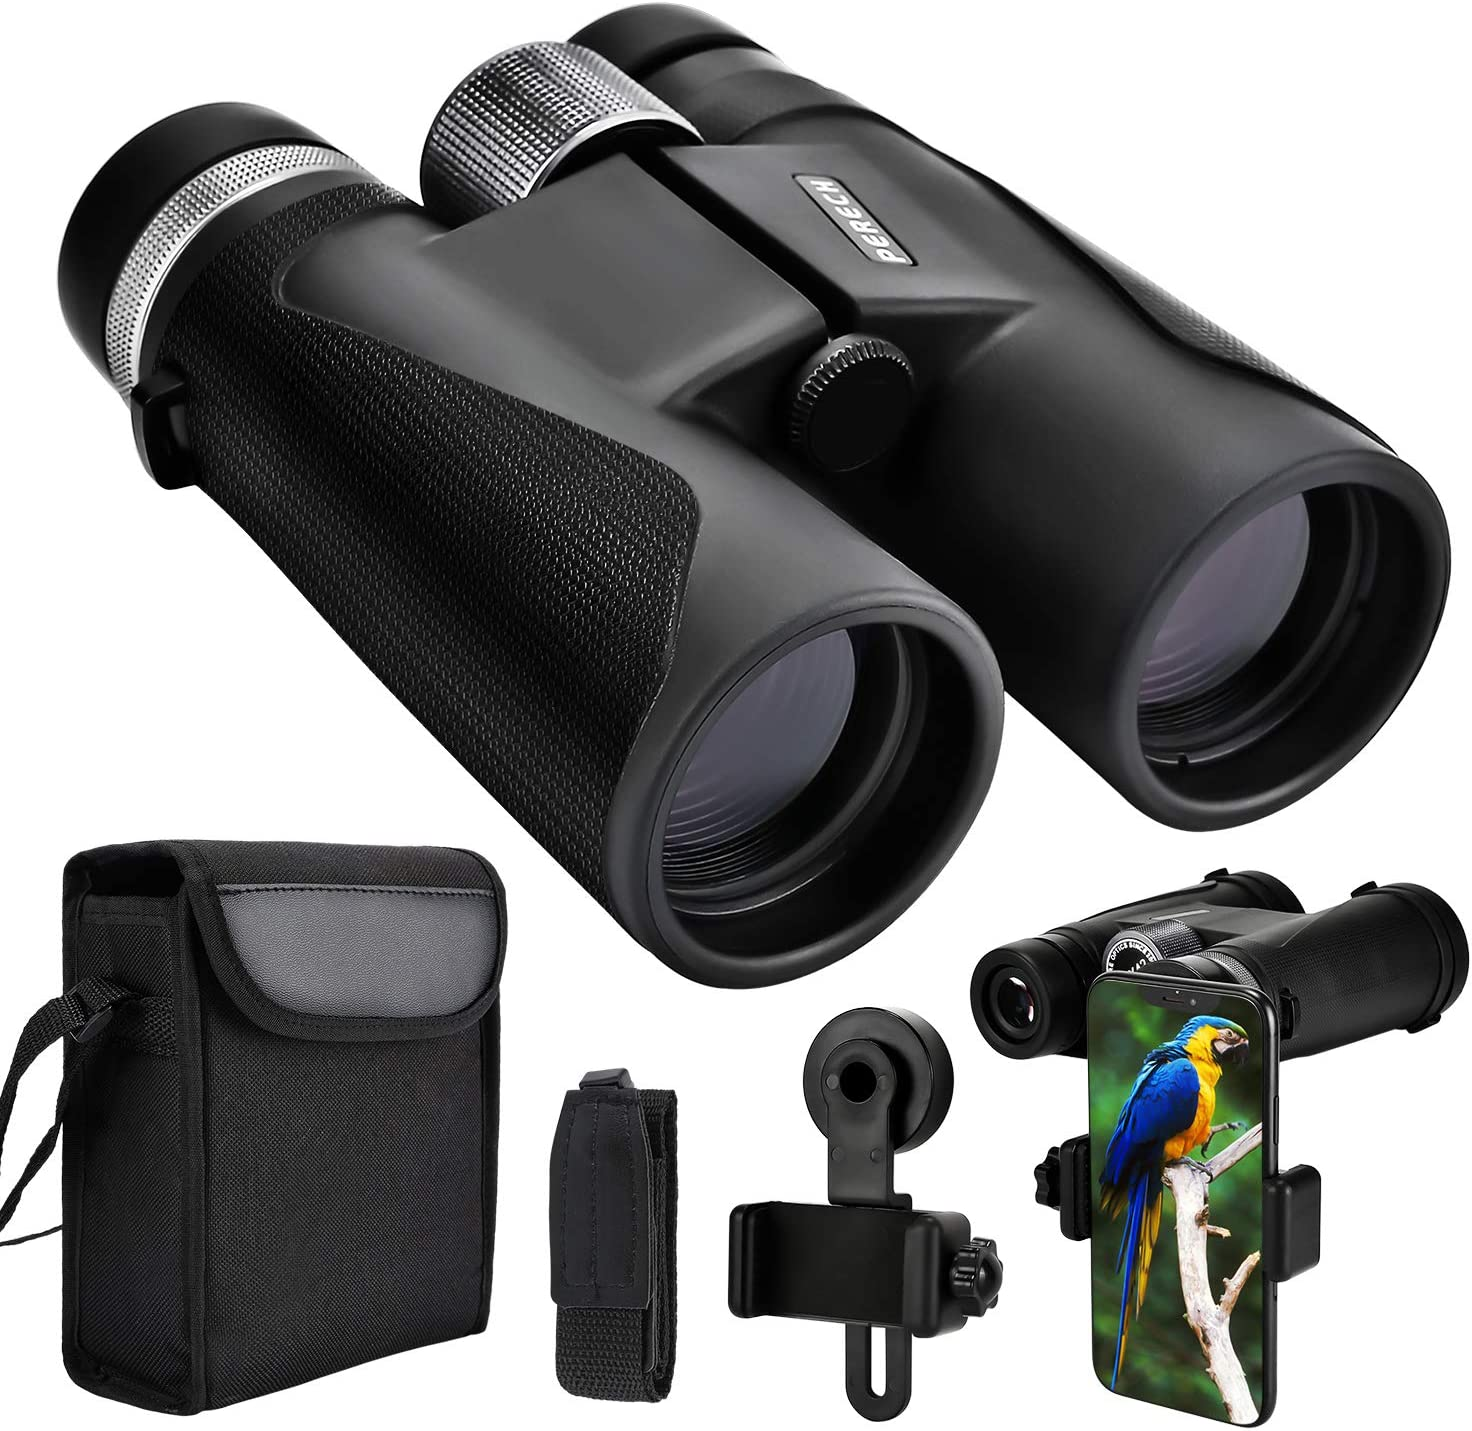 PERECH 12X42 Binoculars HD BAK4 Prism with High Definition Low Light Night Vision Defense, Compact Waterproof Binoculars for Bird Watching Hunting Traveling and Sightseeing with Phone Adapter